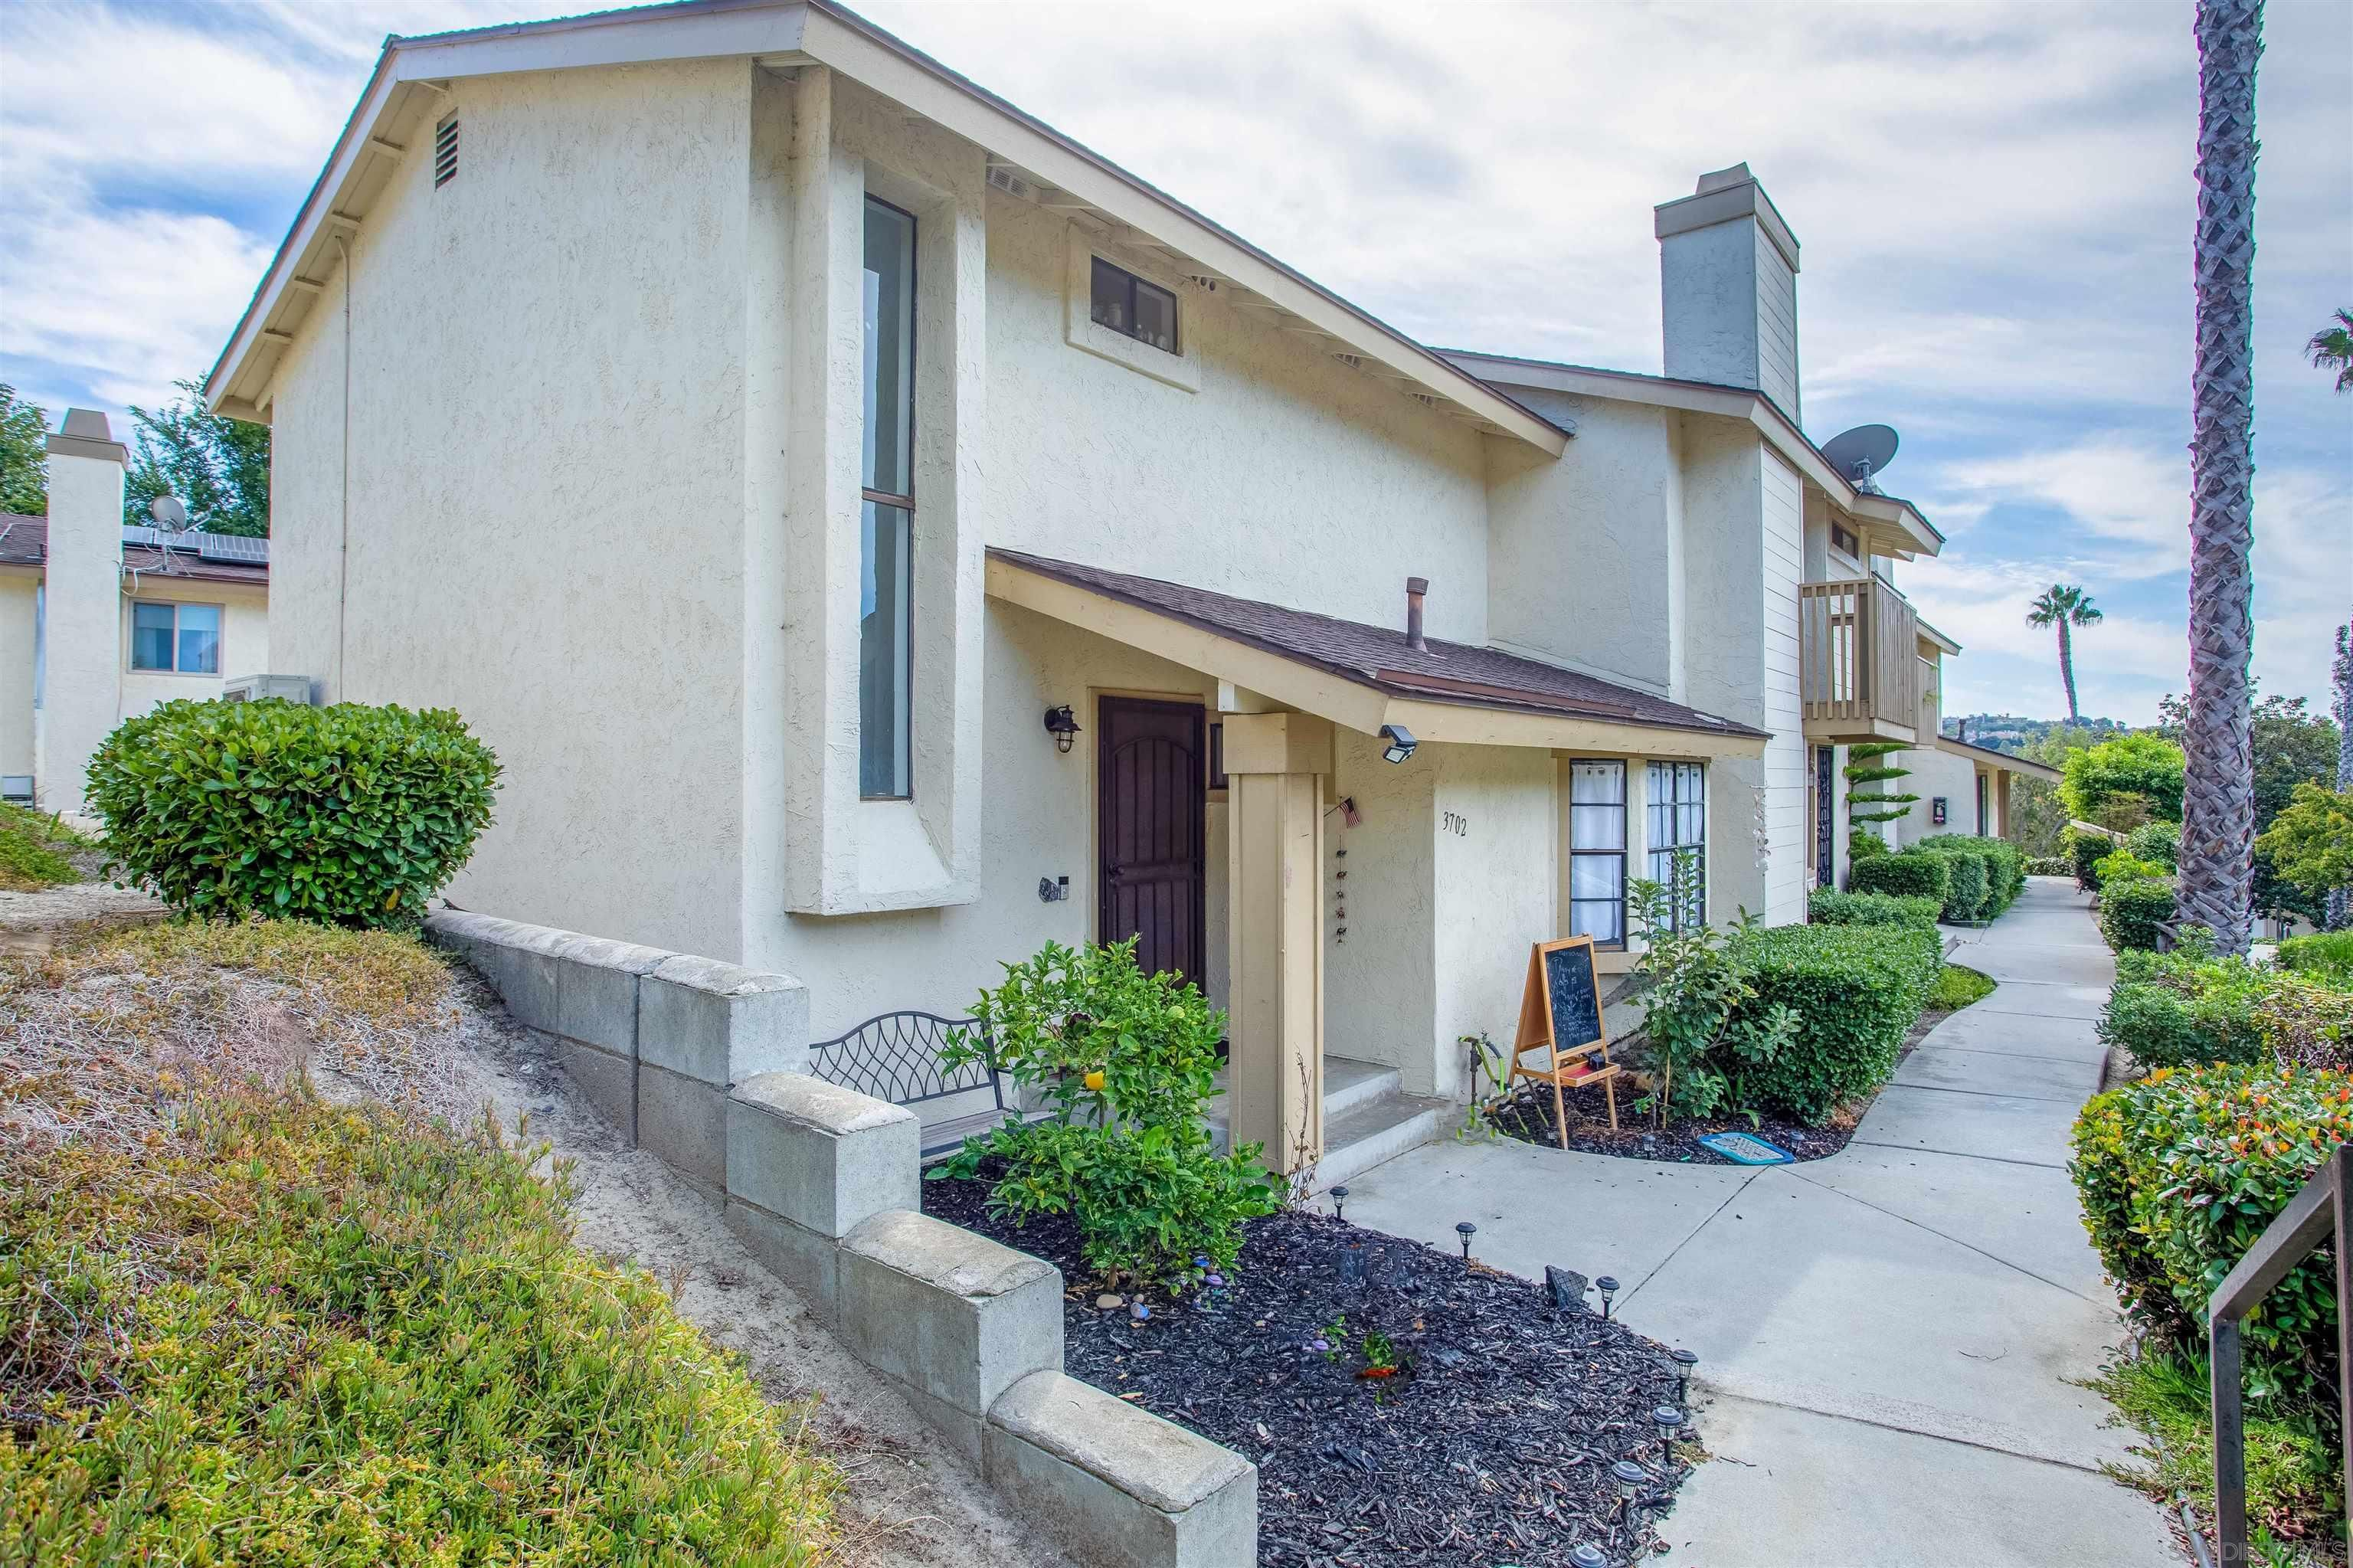 Main Photo: OCEANSIDE Townhouse for sale : 2 bedrooms : 3702 Harvard Dr